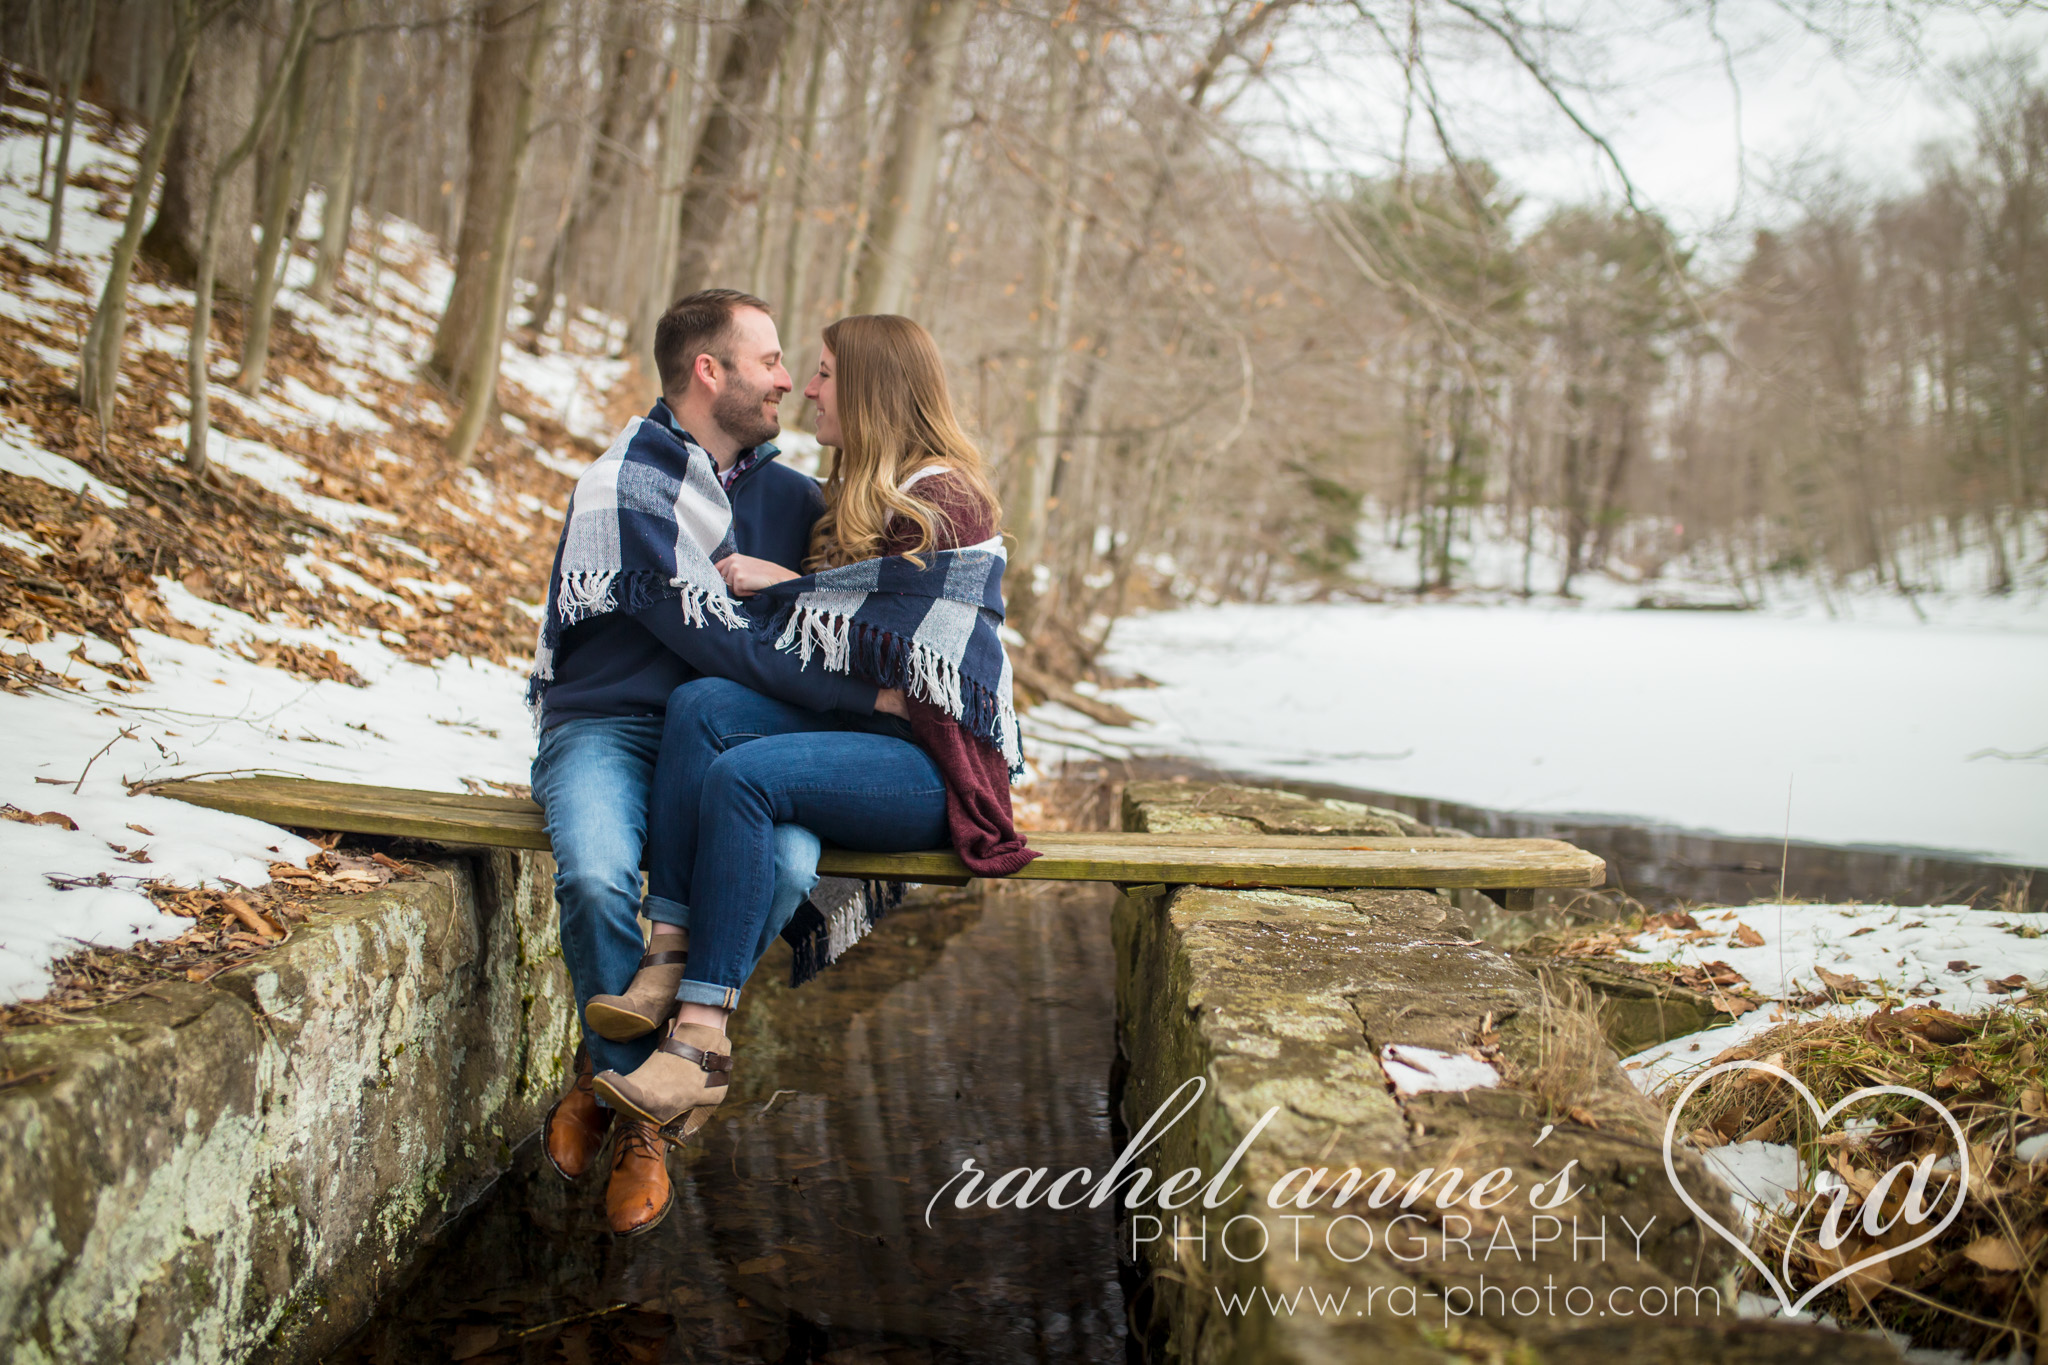 022-JKM-DUBOIS-PA-ENGAGEMENT-PHOTOGRAPHY.jpg